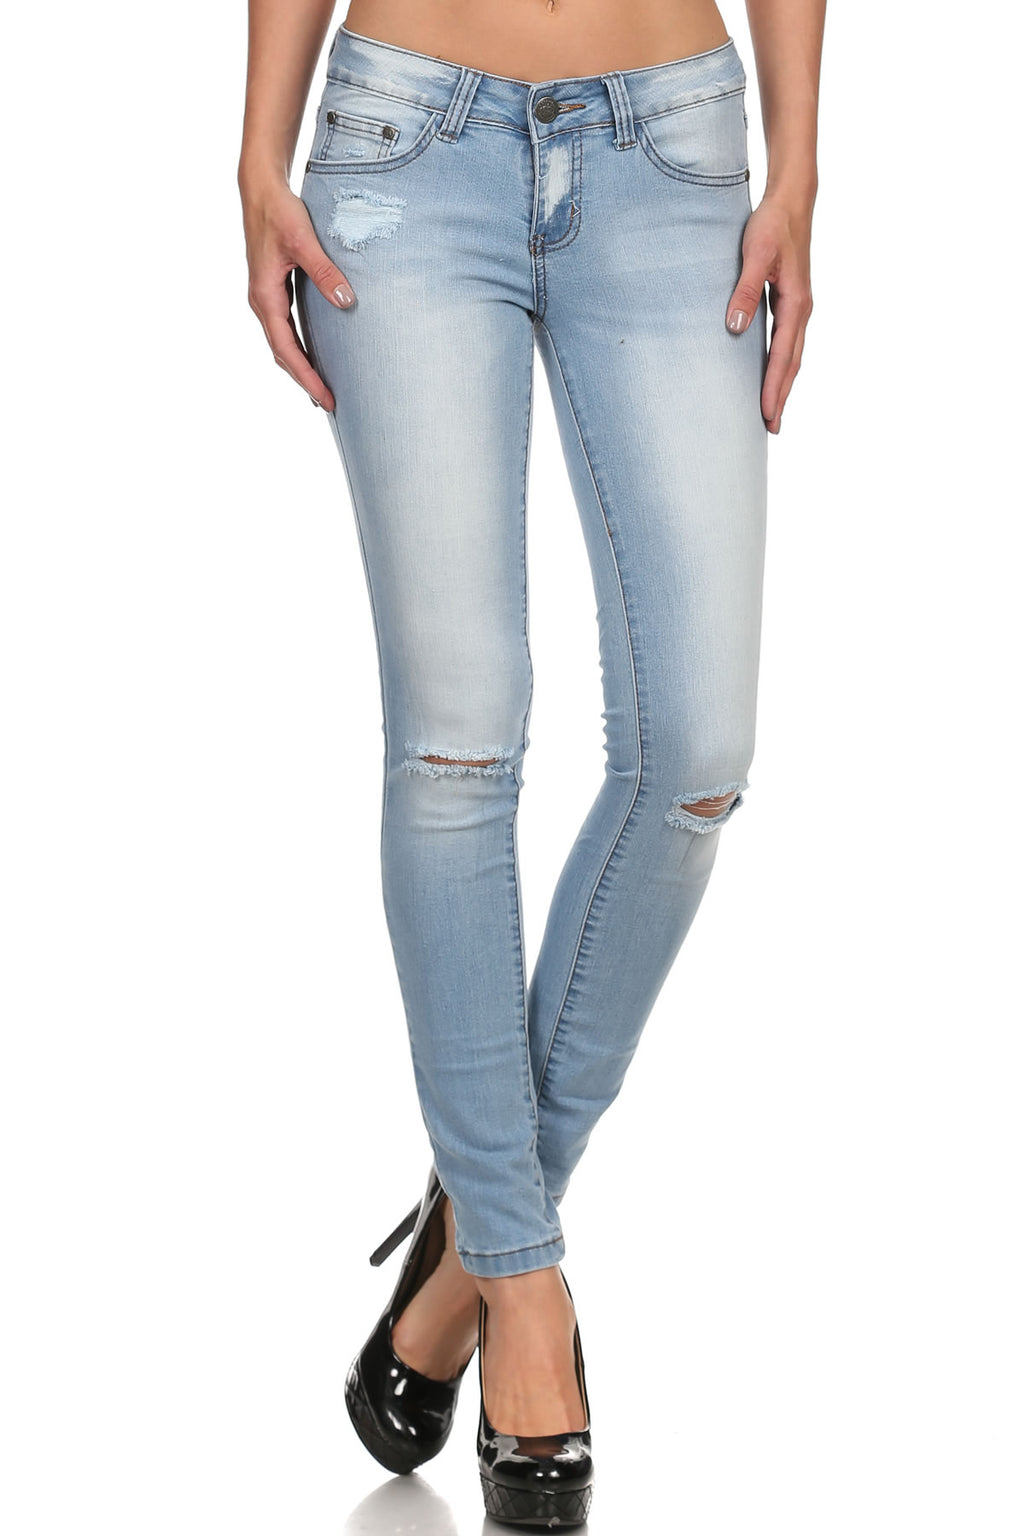 Bria Bella & Co - Distressed Light Wash Denim